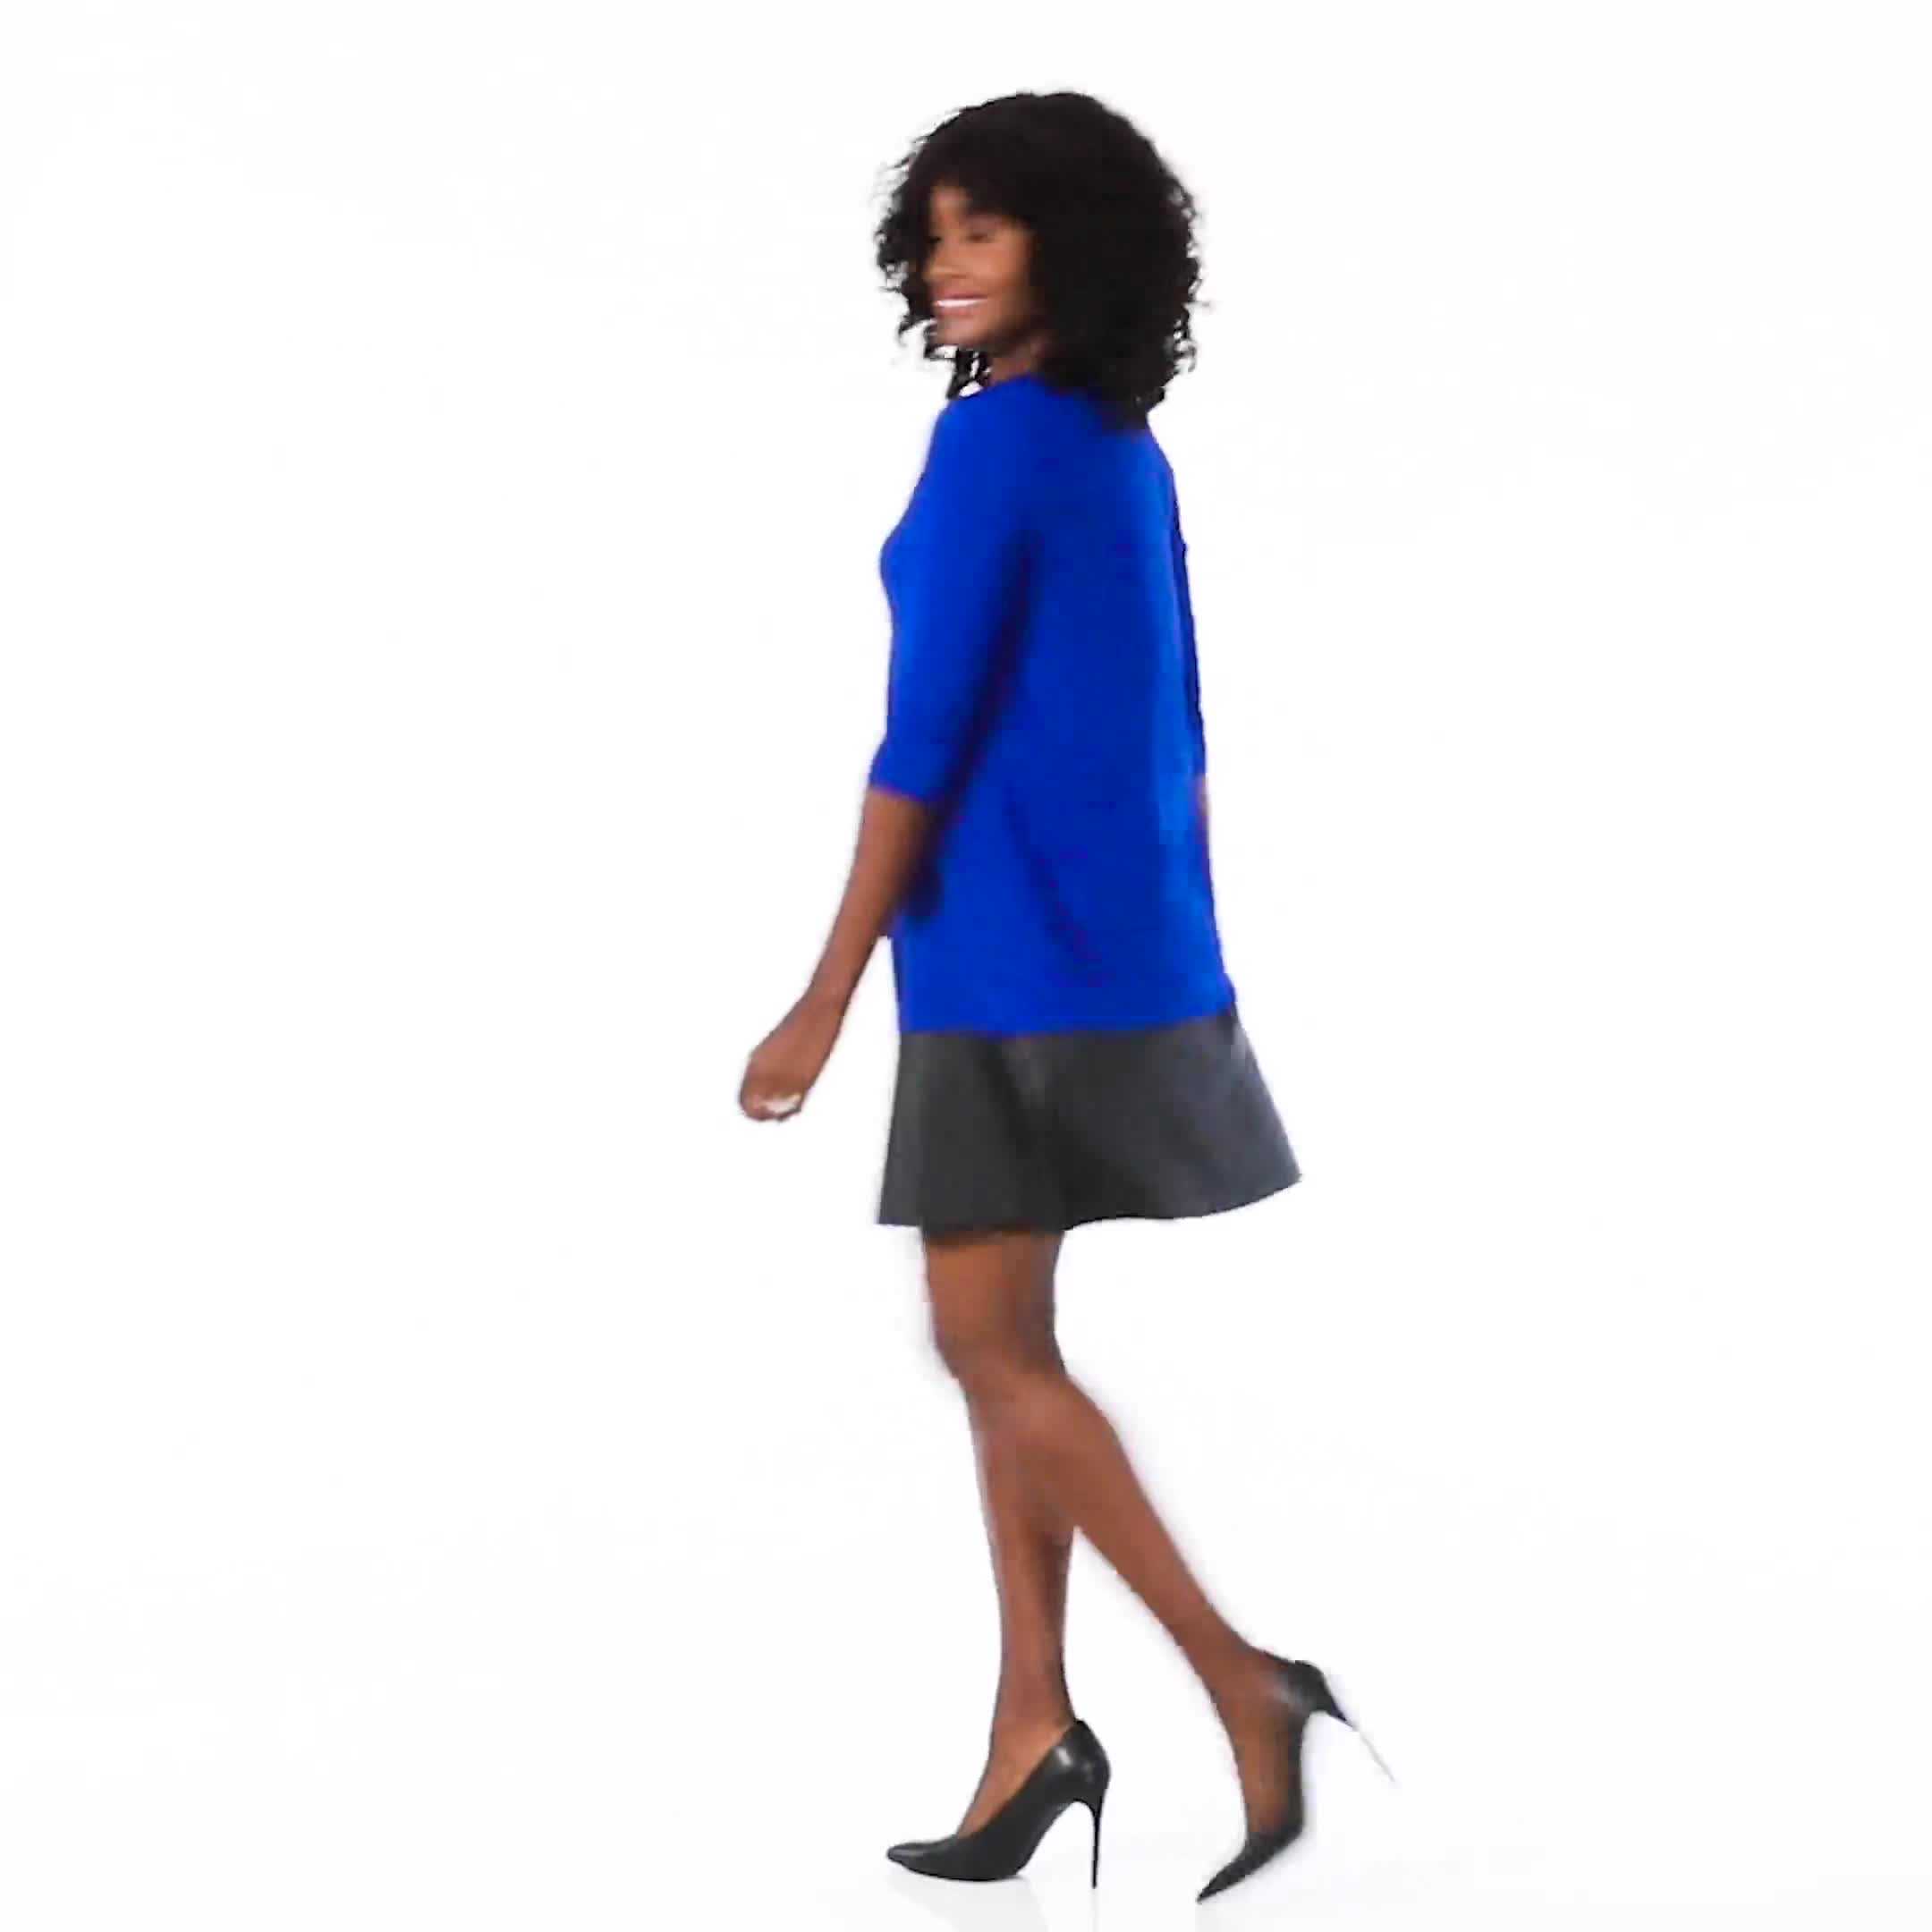 Knit Dress With Faux Leather Trim - Misses - Video